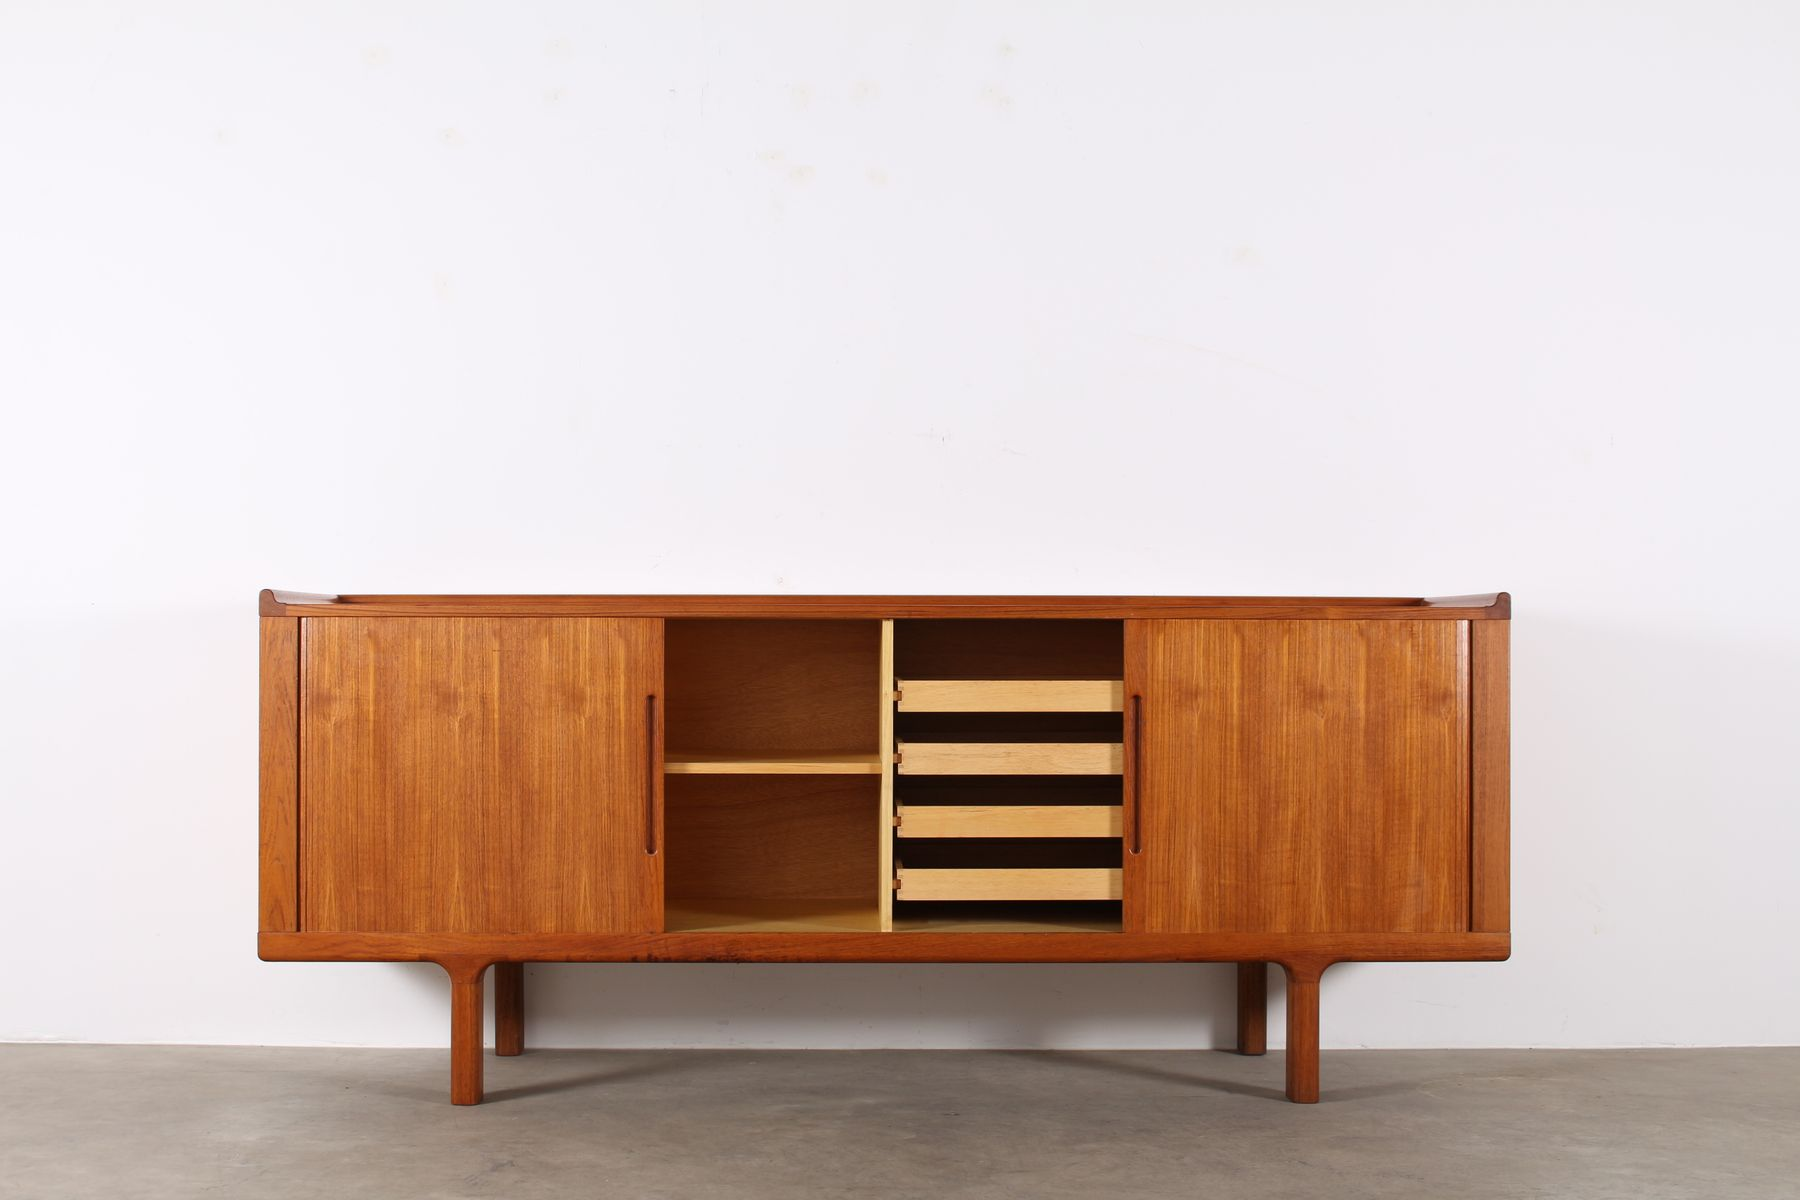 d nisches sideboard von knud faerch f r soro stolefabrik 1970er bei pamono kaufen. Black Bedroom Furniture Sets. Home Design Ideas